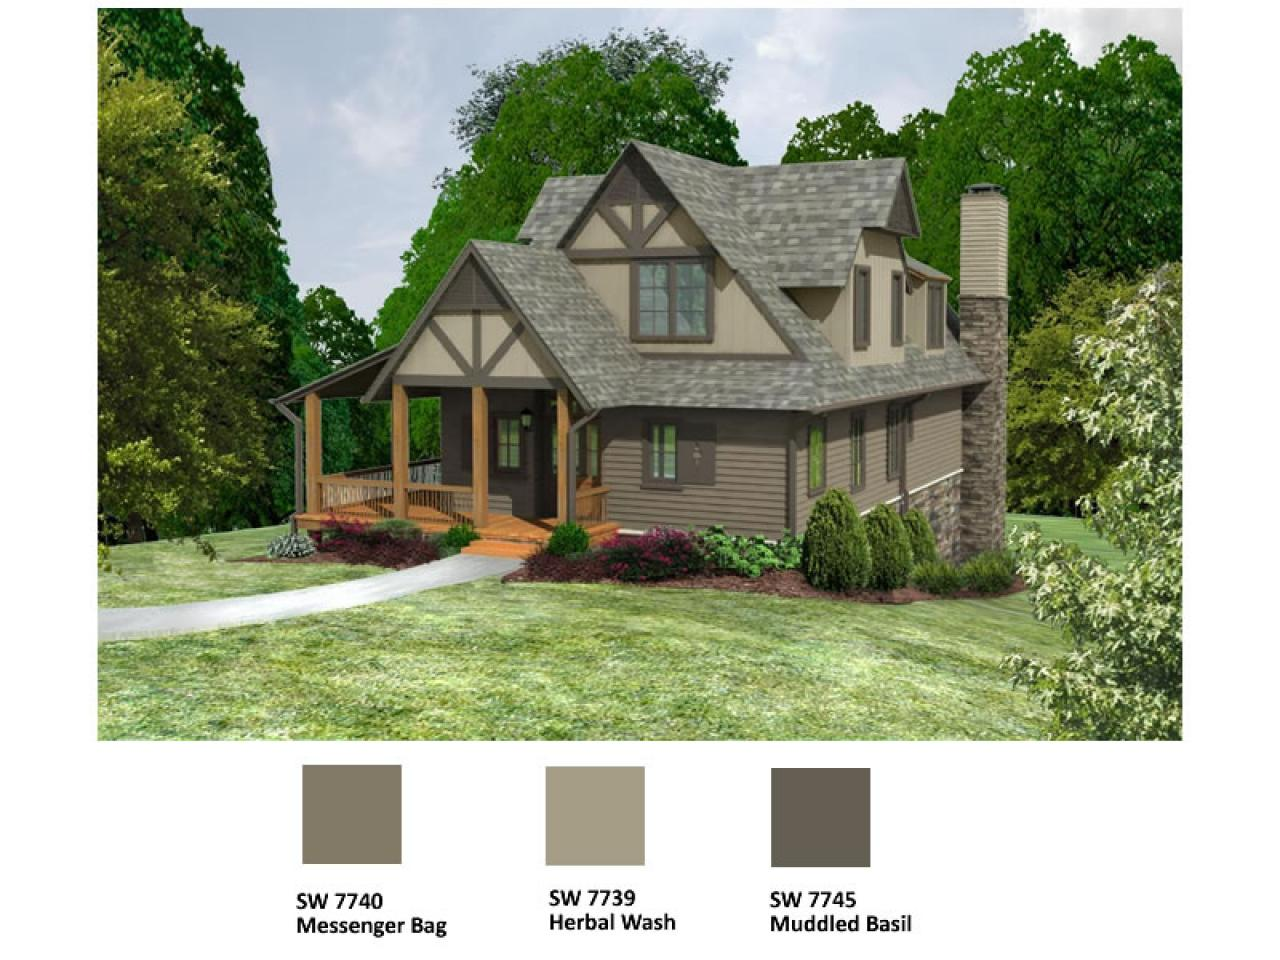 Blog cabin 2009 flooring and exterior paint color voting - Colour schemes for exterior house paint ...